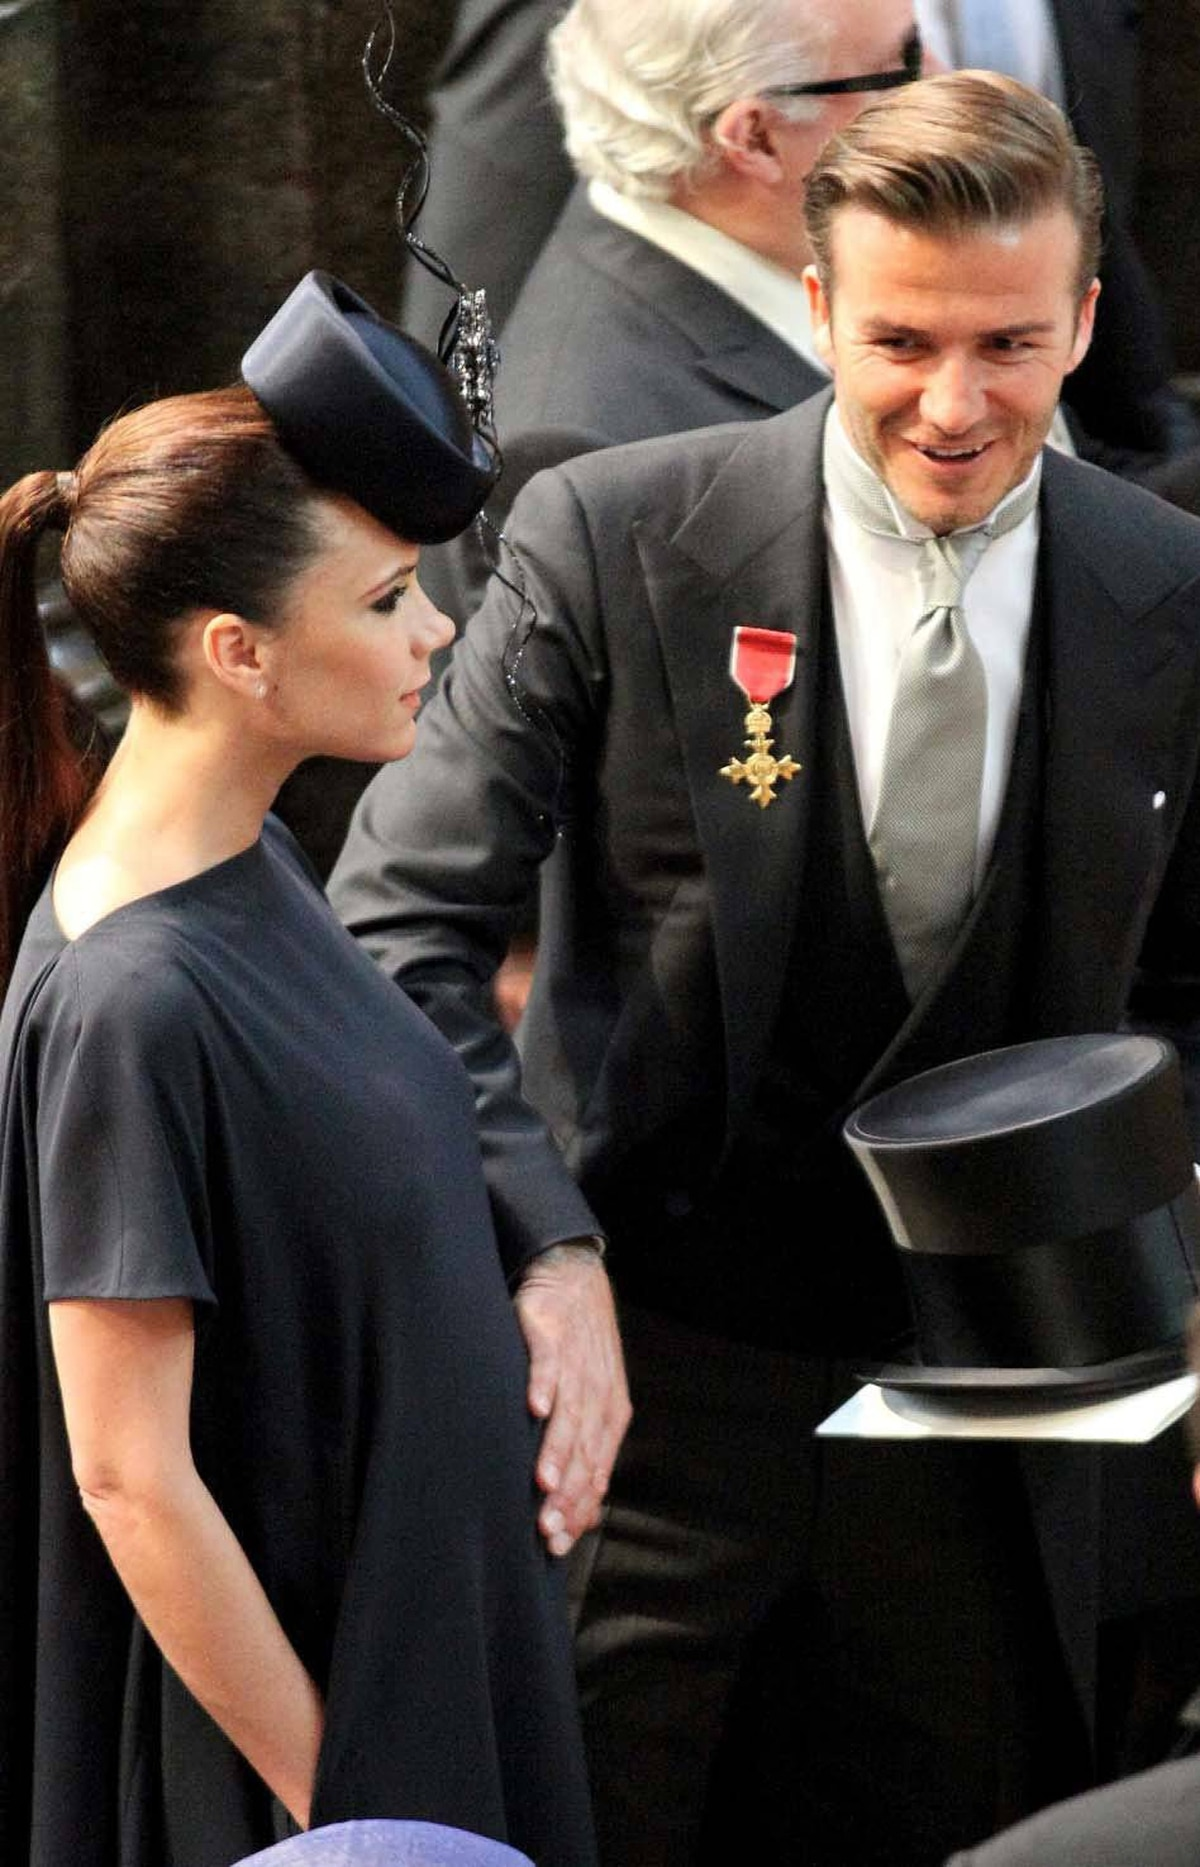 So, what's left? Royal weddings! Soccer star David Beckham puts his hand on the stomach of his pregnant wife Victoria as they take their seats for the Royal wedding of Prince William and Kate Middleton at Westminster Abbey in London on April 29, 2011.